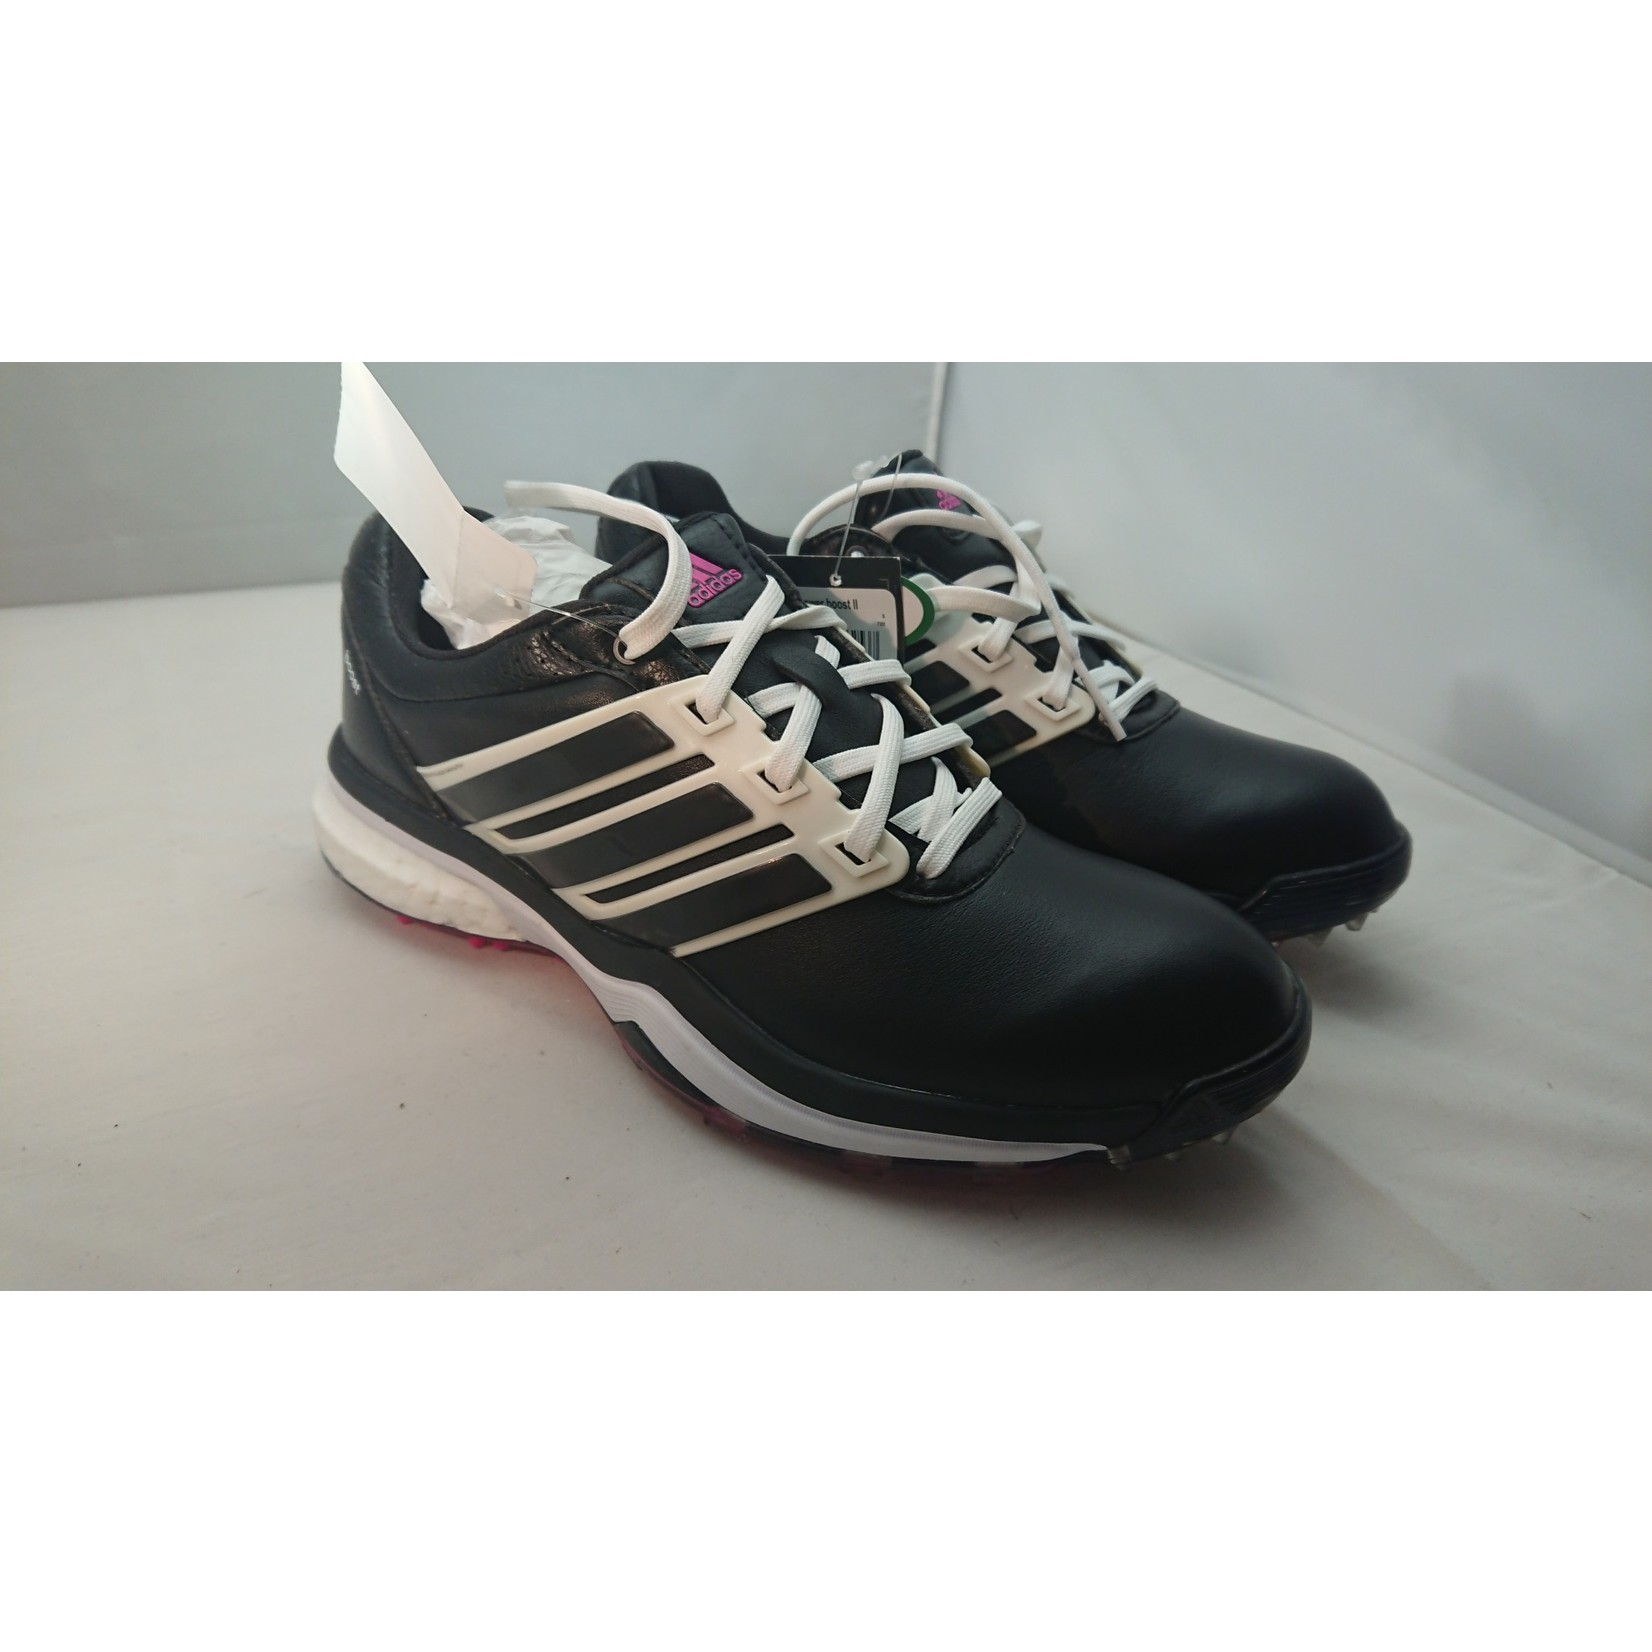 Adidas Adidas Power Boost 2 Zwart 38 / UK5